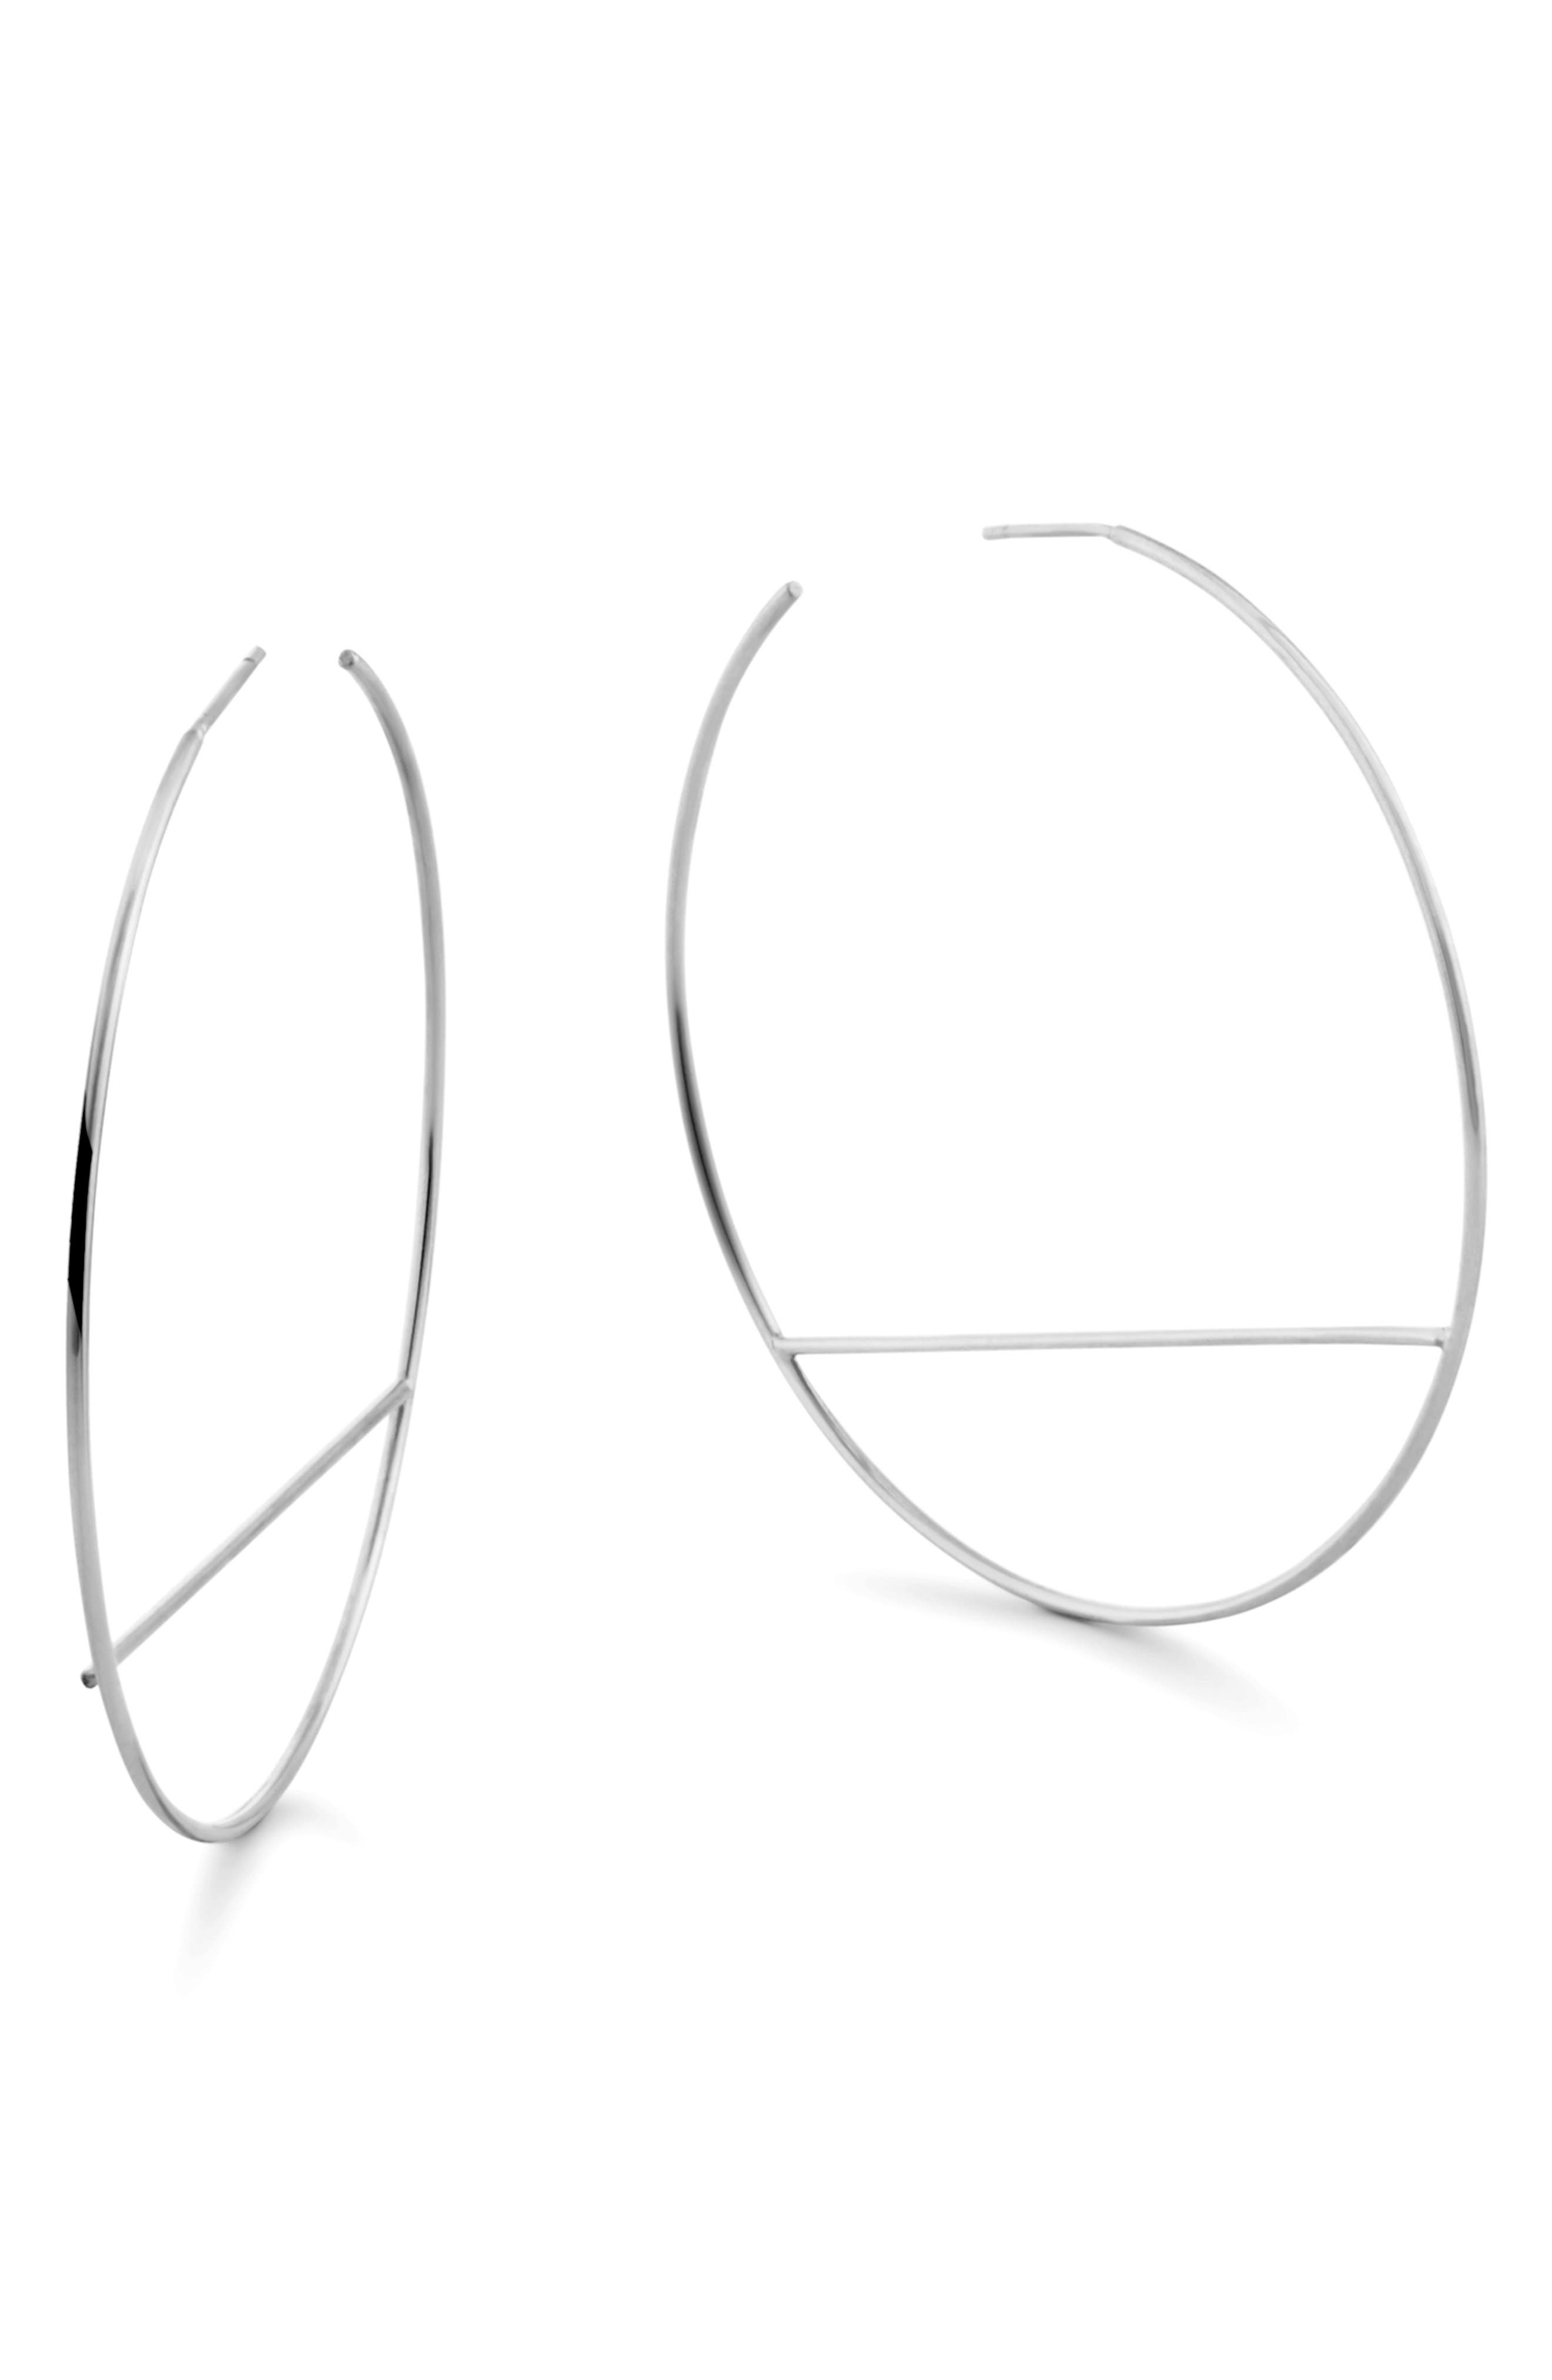 LANA JEWELRY Wire Eclipse Hoop Earrings, Main, color, WHITE GOLD